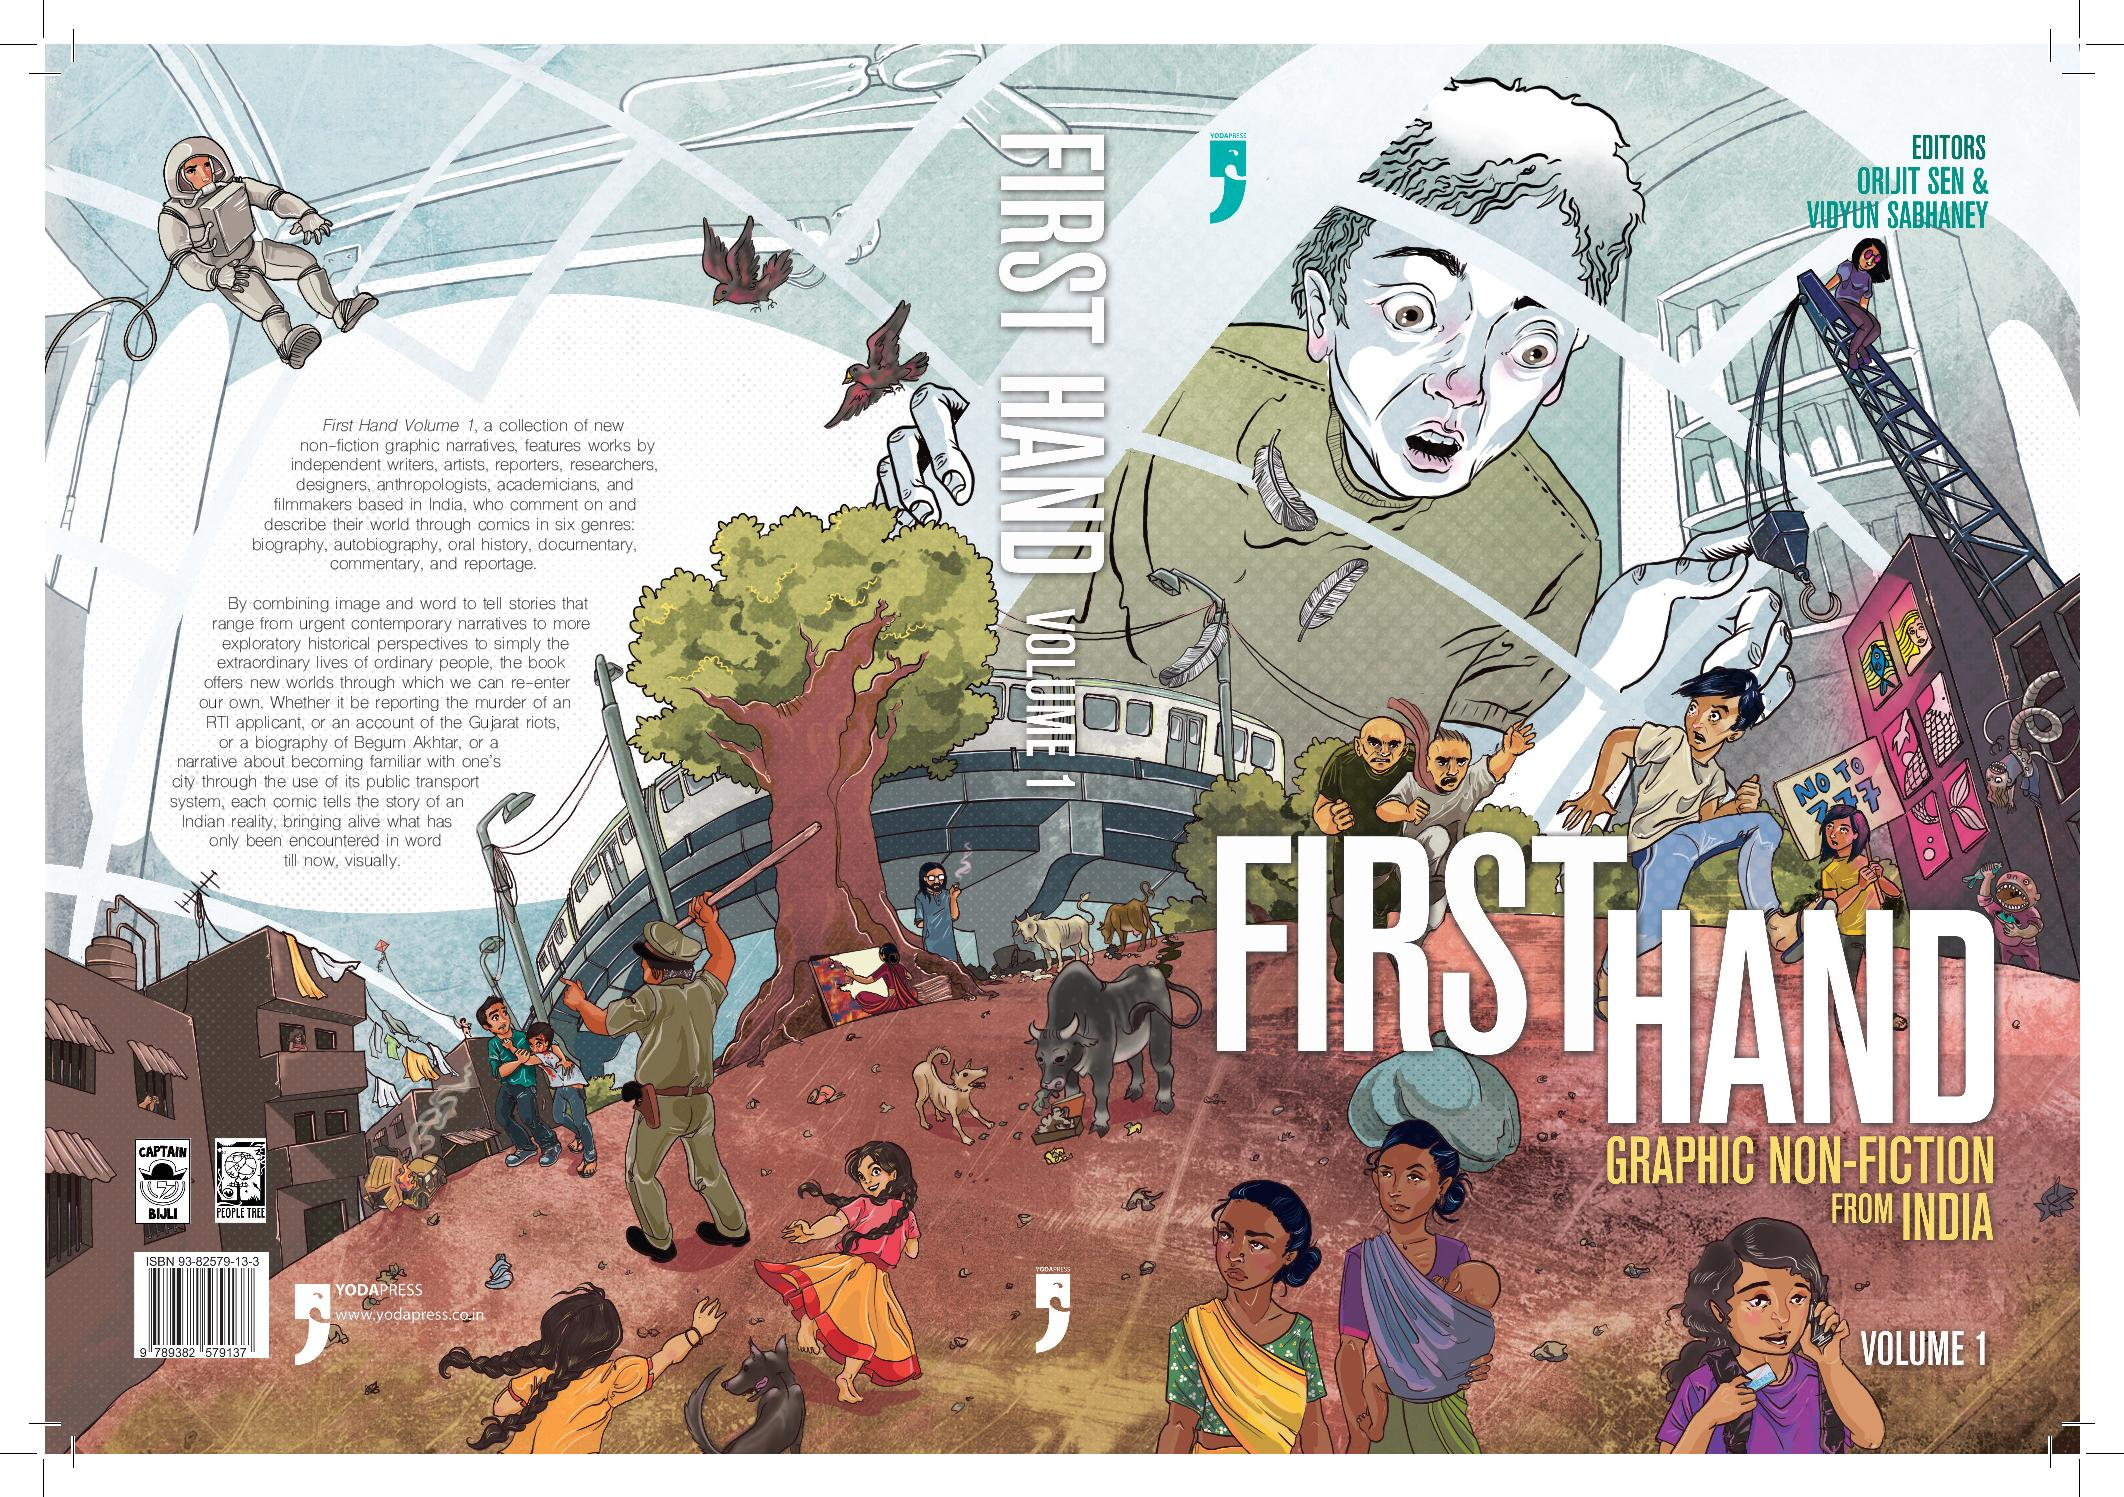 FirstHandCOVER-page-001